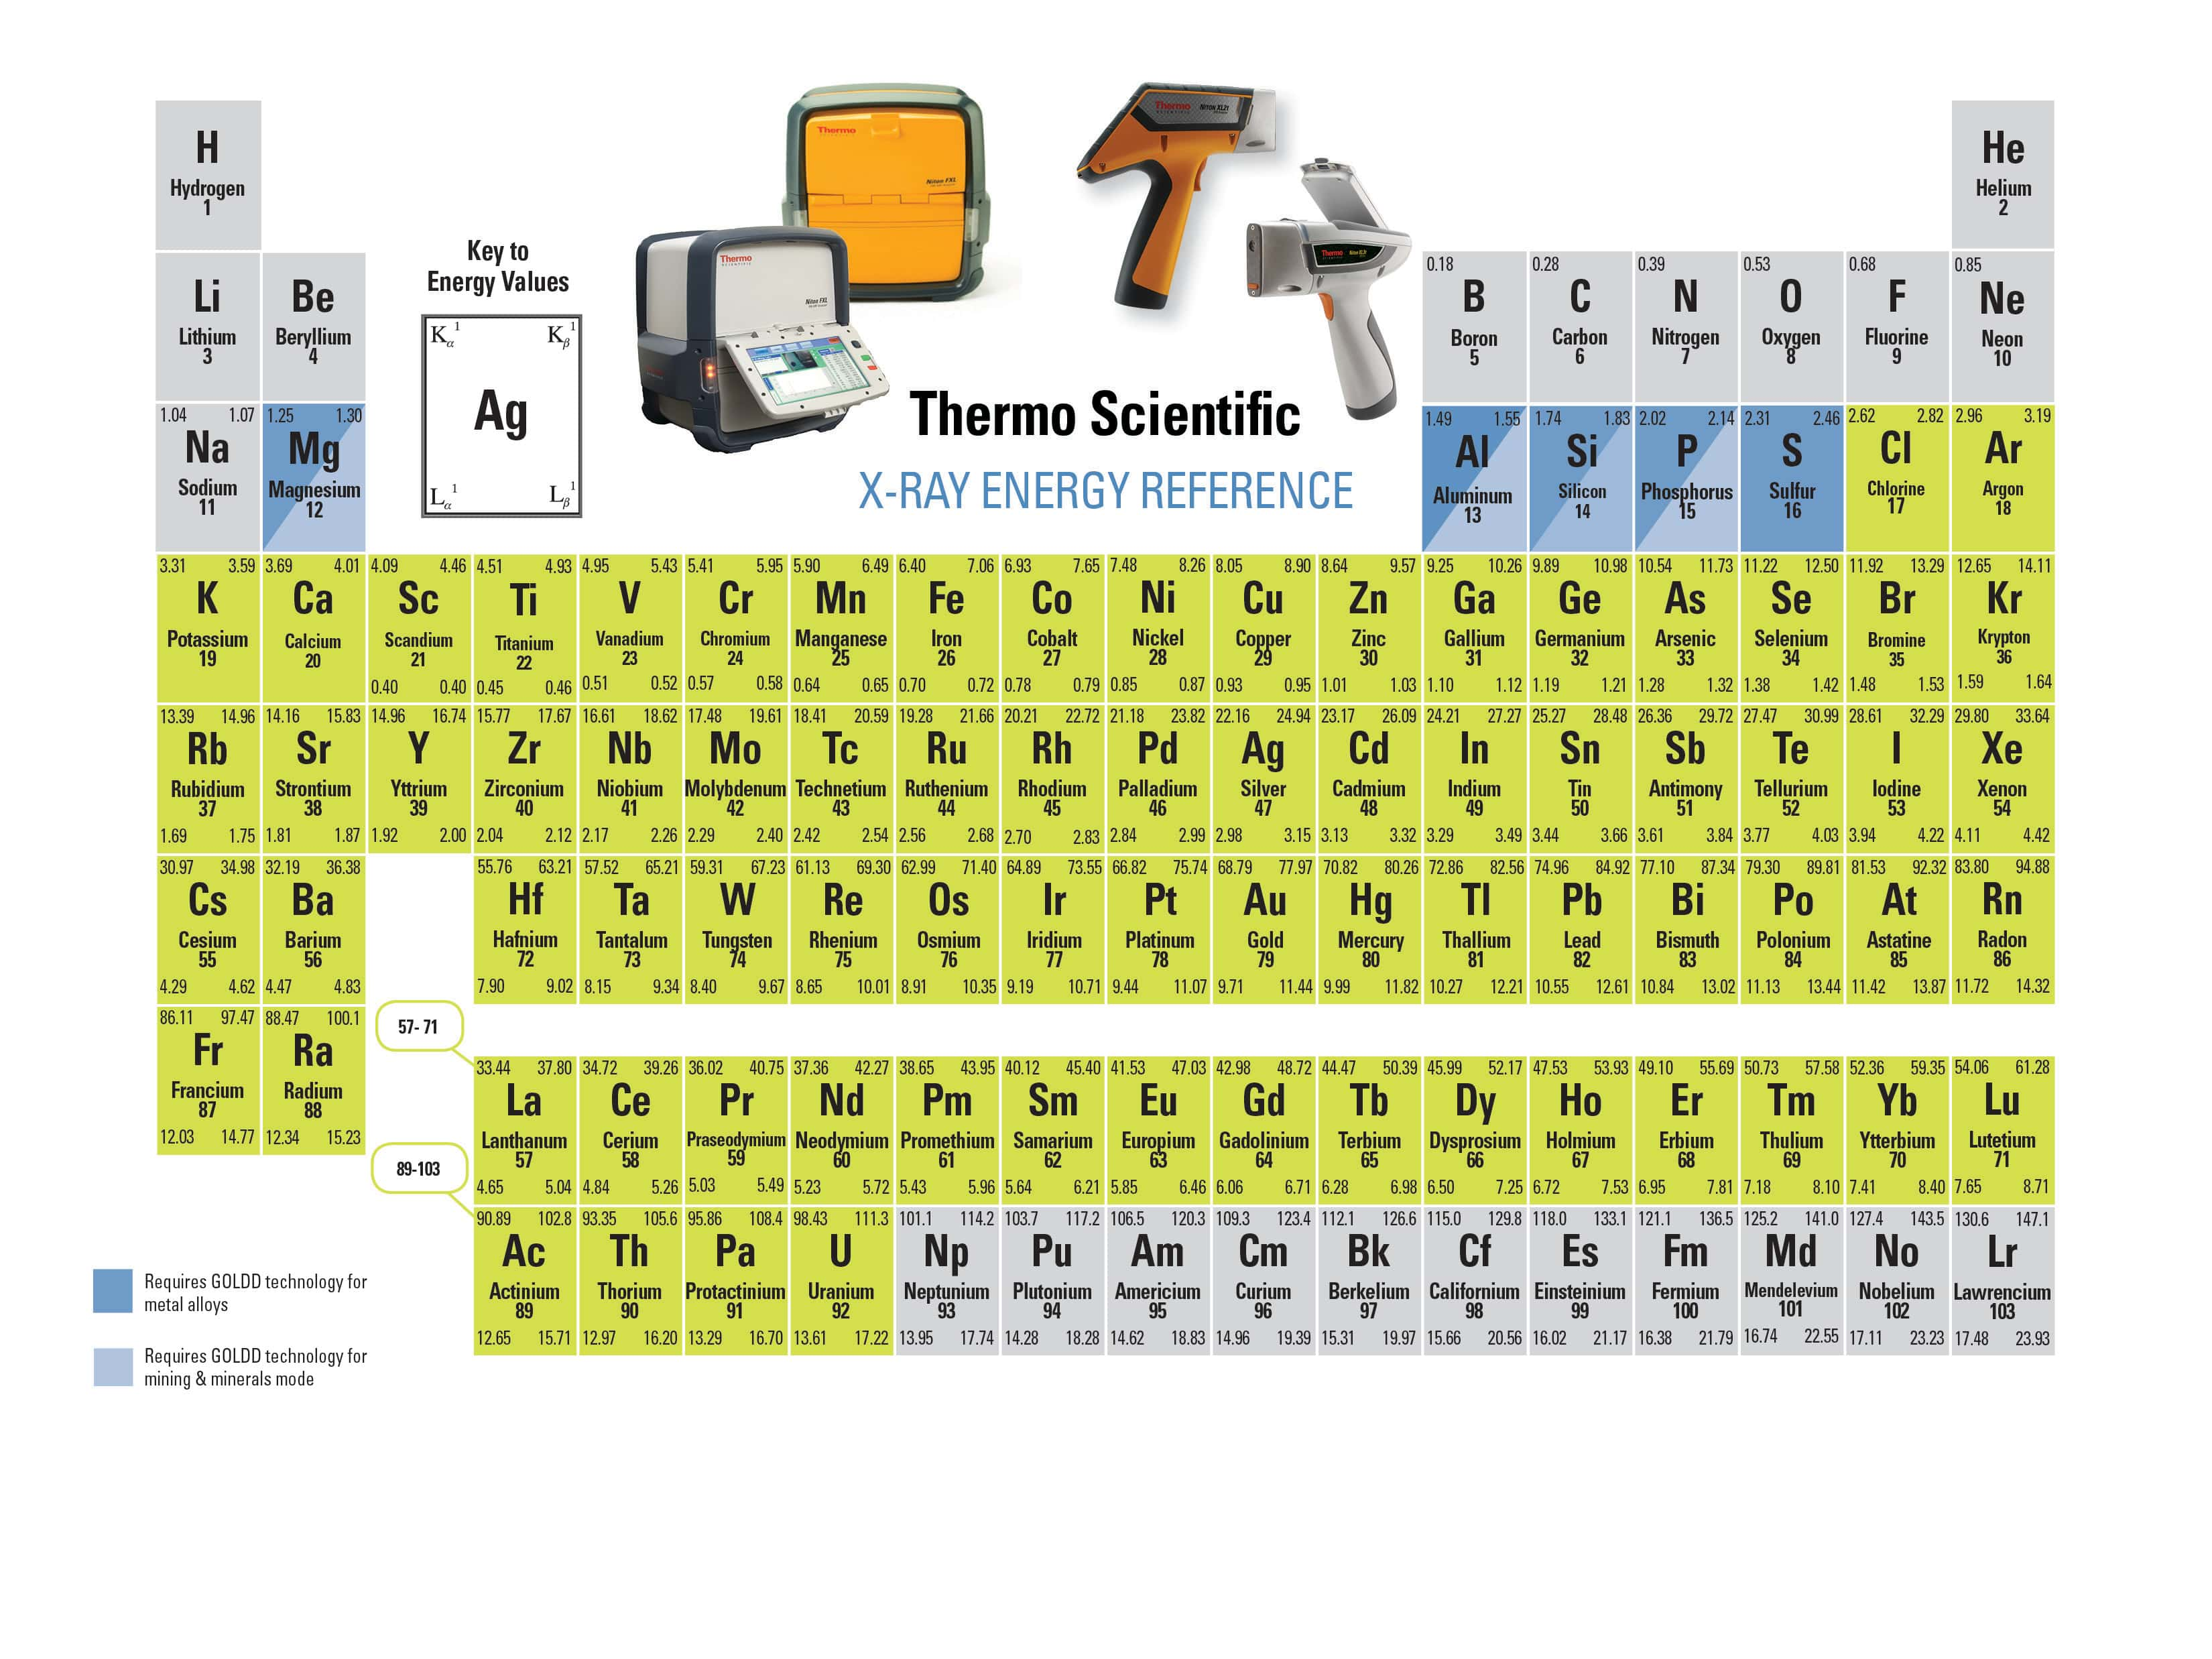 Free periodic table for your halloween goody bag nitonperiodictable fxl 2011jan24 300x225 a halloween treat free periodic table gamestrikefo Choice Image